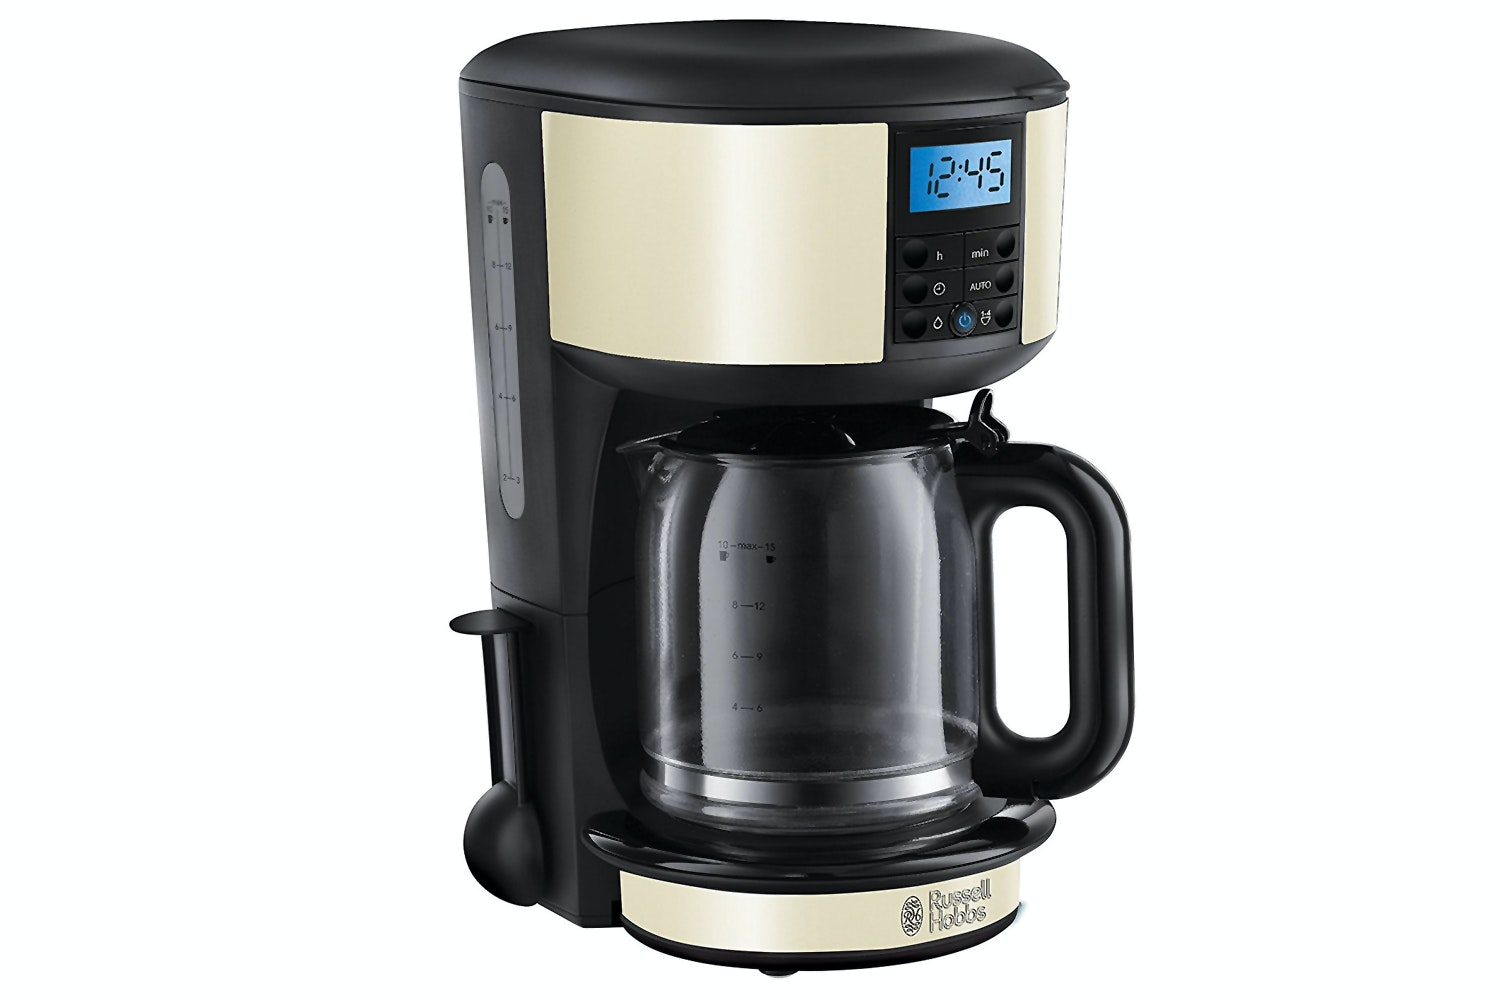 Russell Hobbs Legacy Coffee Maker | 20683 | Cream